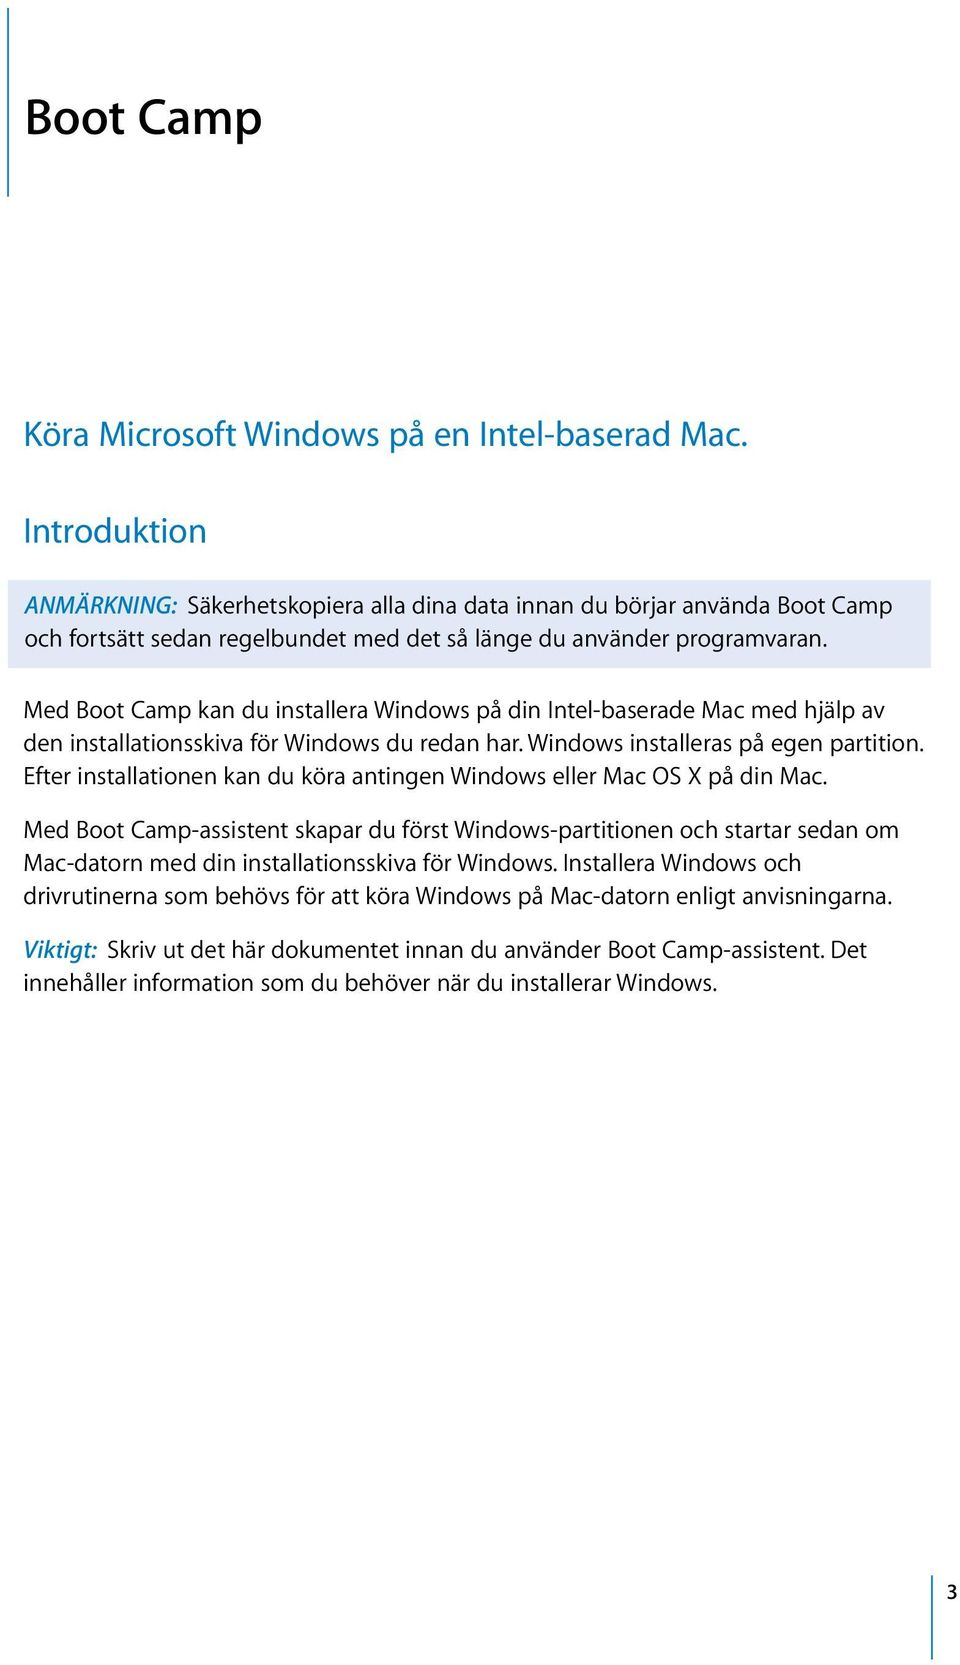 Med Boot Camp kan du installera Windows på din Intel-baserade Mac med hjälp av den installationsskiva för Windows du redan har. Windows installeras på egen partition.